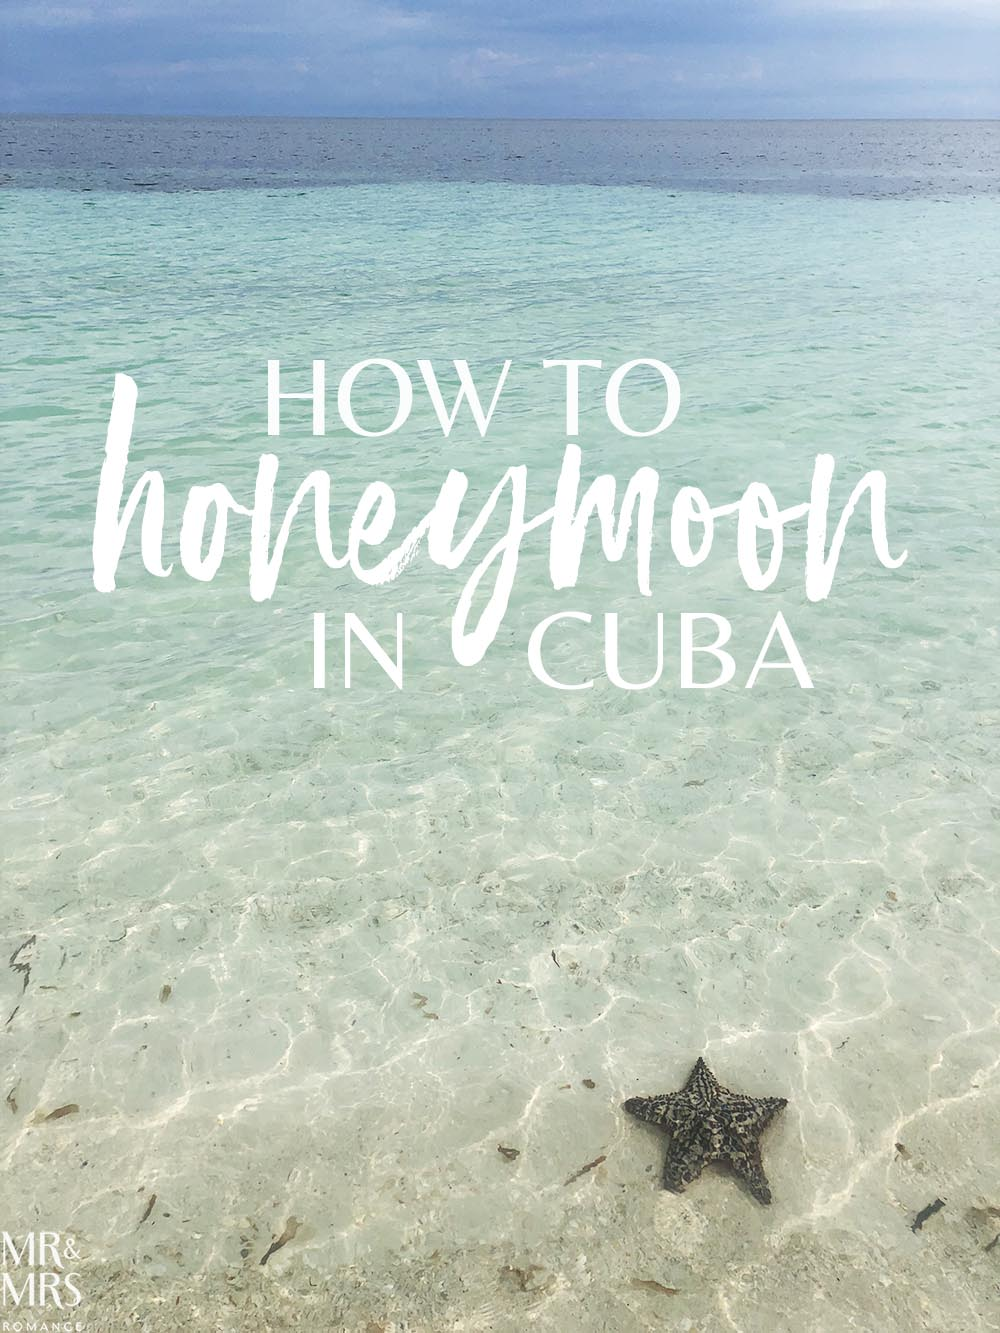 Caribbean honeymoon in Cuba